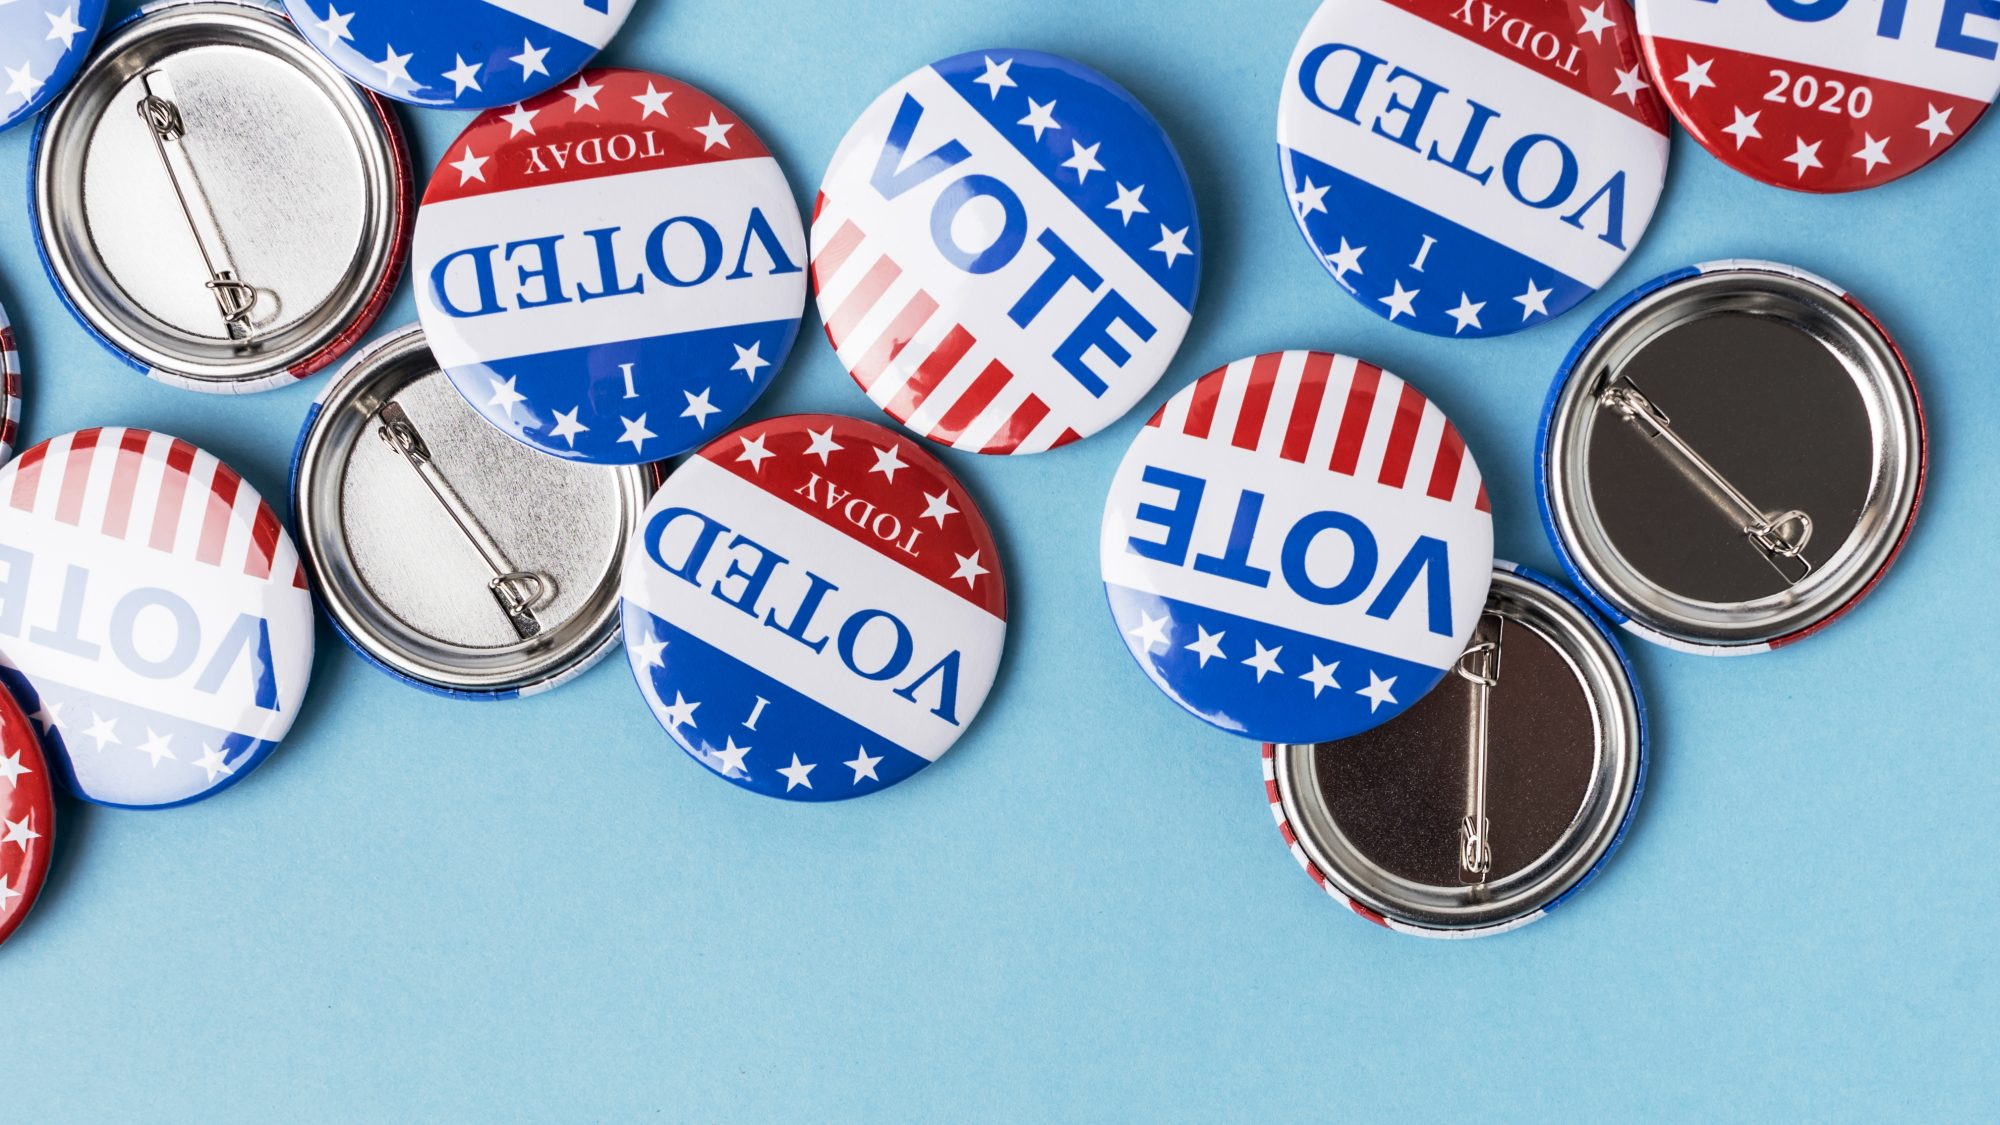 Today I Voted buttons: register to vote